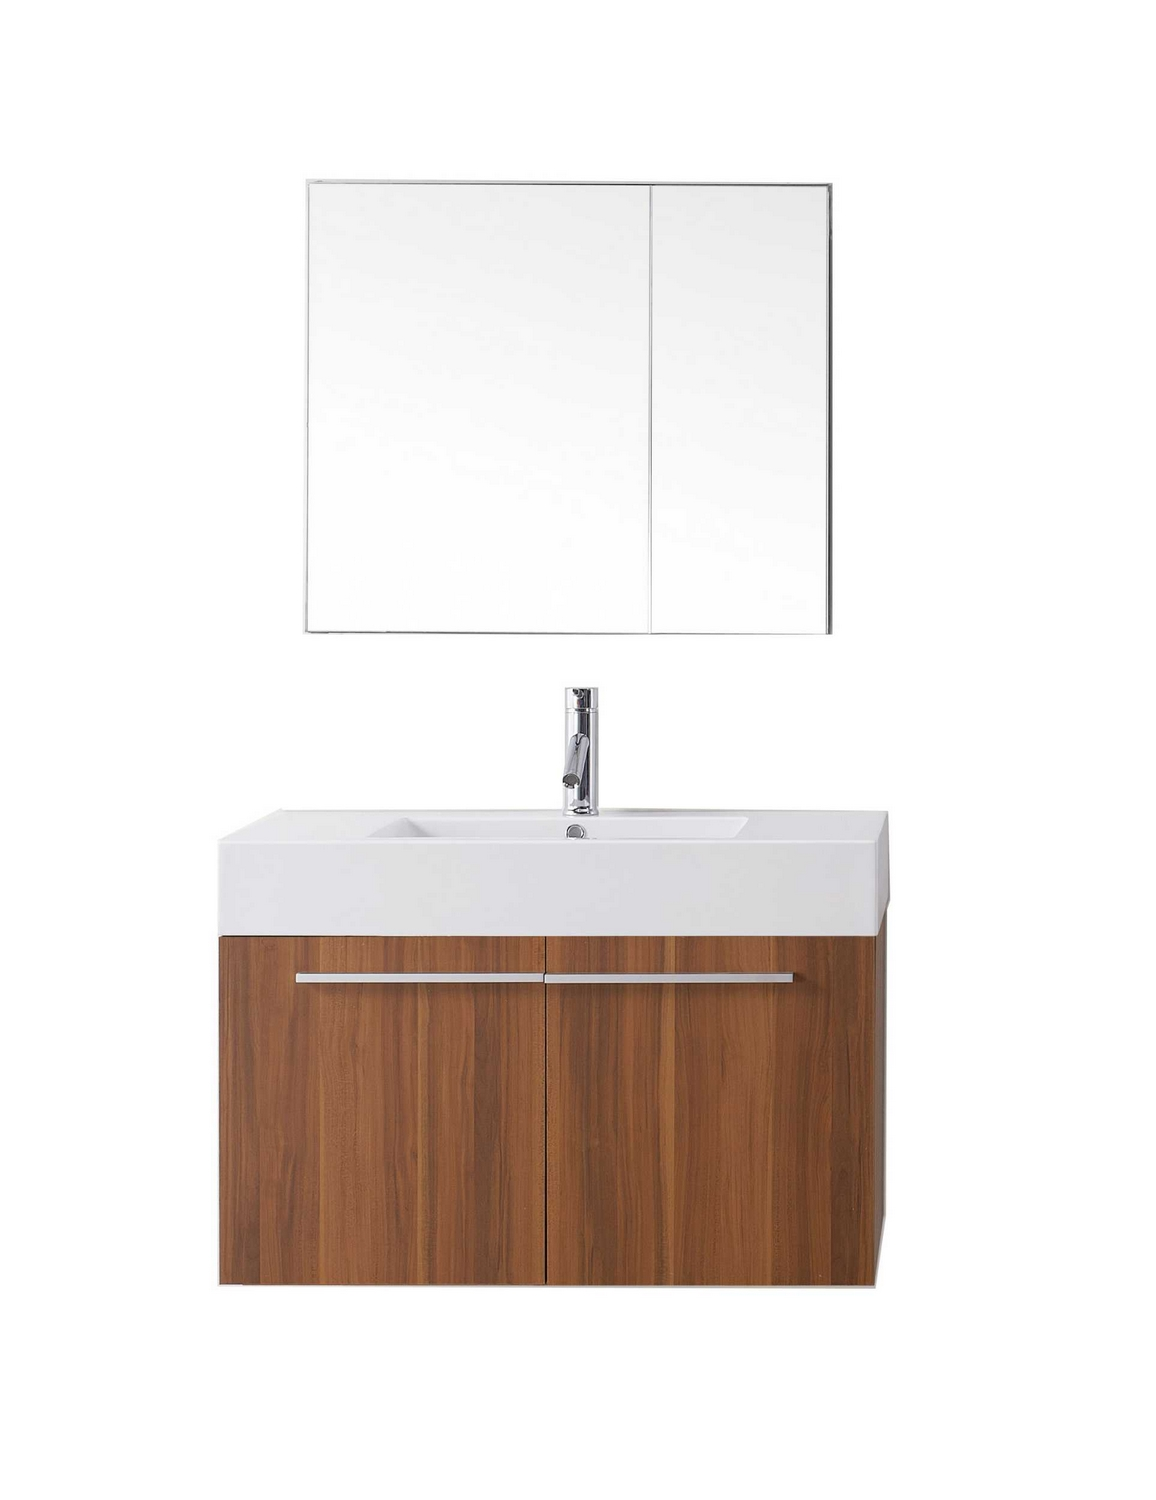 virtu usa midori 36 single bathroom vanity cabinet set in plum